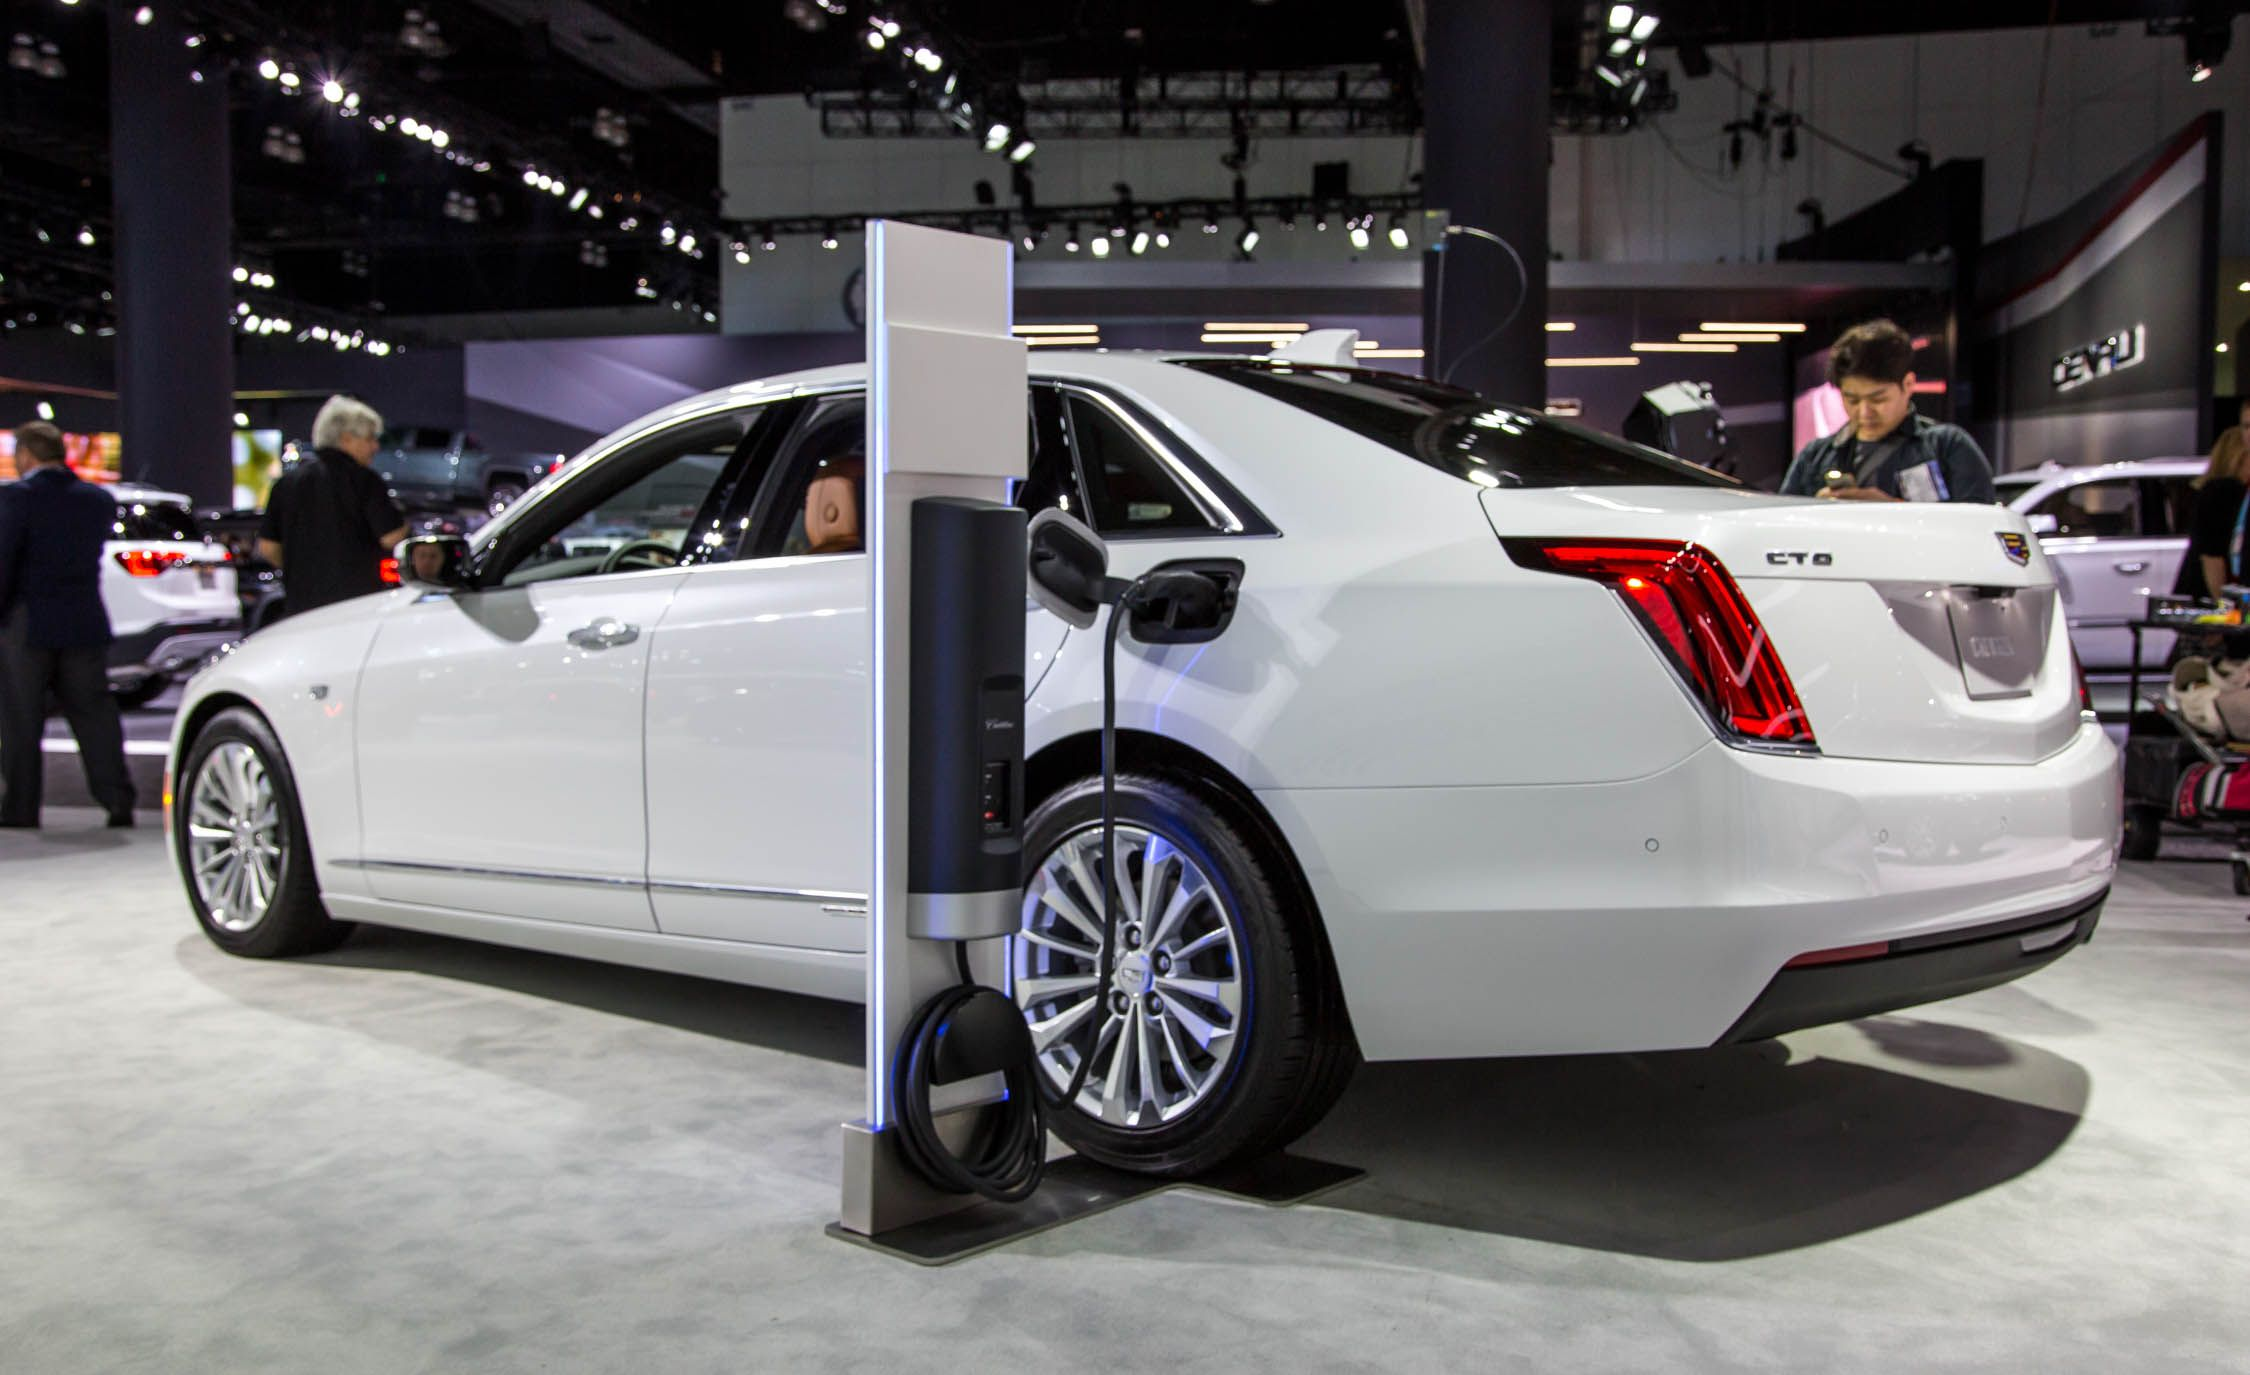 https://hips.hearstapps.com/amv-prod-cad-assets.s3.amazonaws.com/wp-content/uploads/2016/11/2017-Cadillac-CT6-plug-in-hybrid-show-floors-102.jpg?crop=1xw:1xh;center,center&resize=884:*